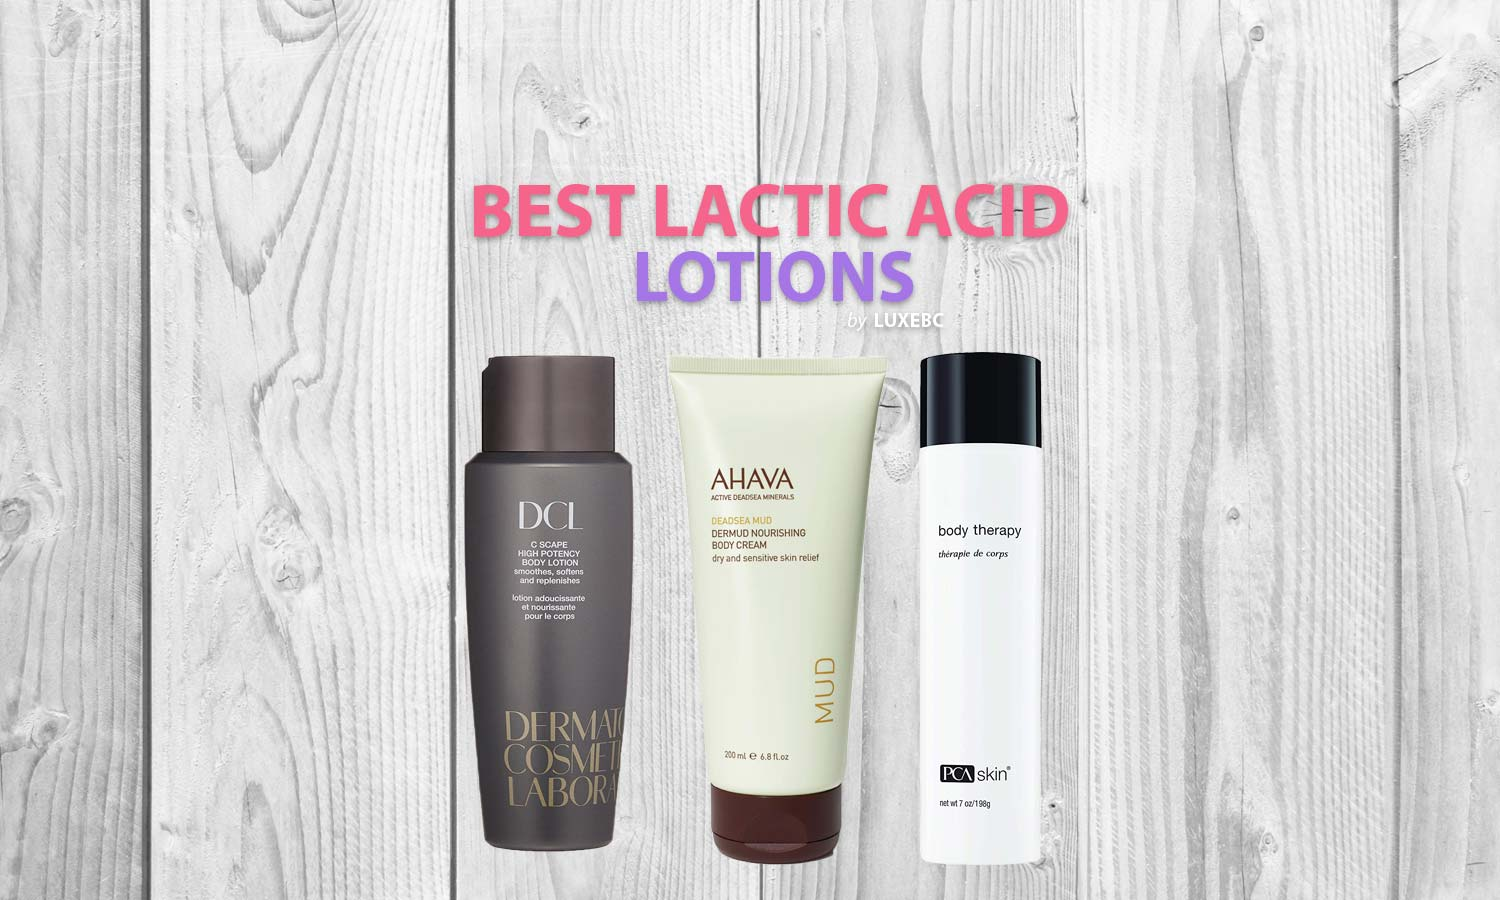 Best lactic acid lotions